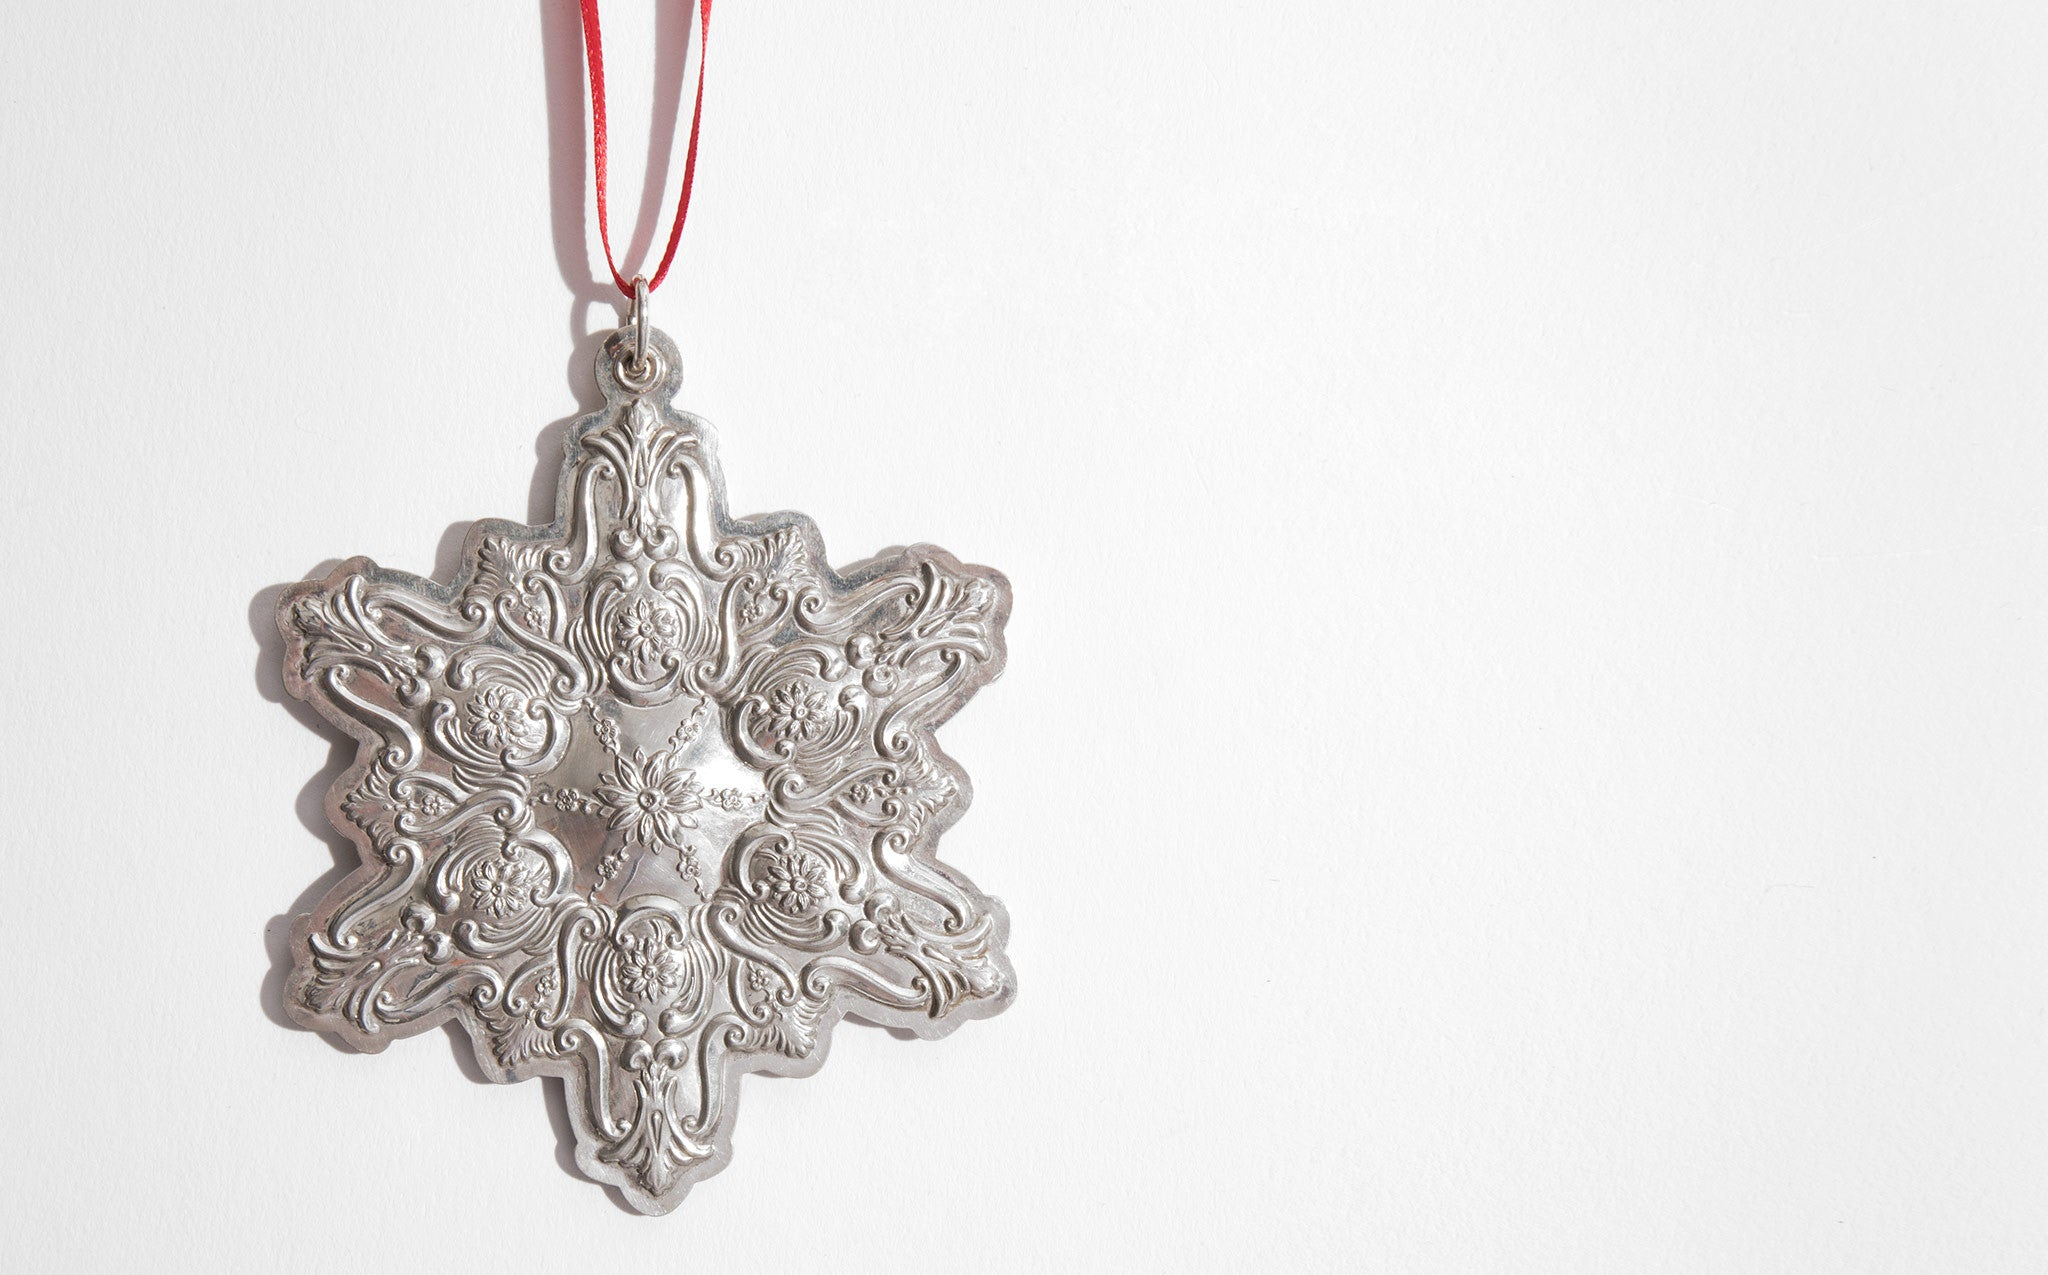 Towle Sterling Silver Snowflake